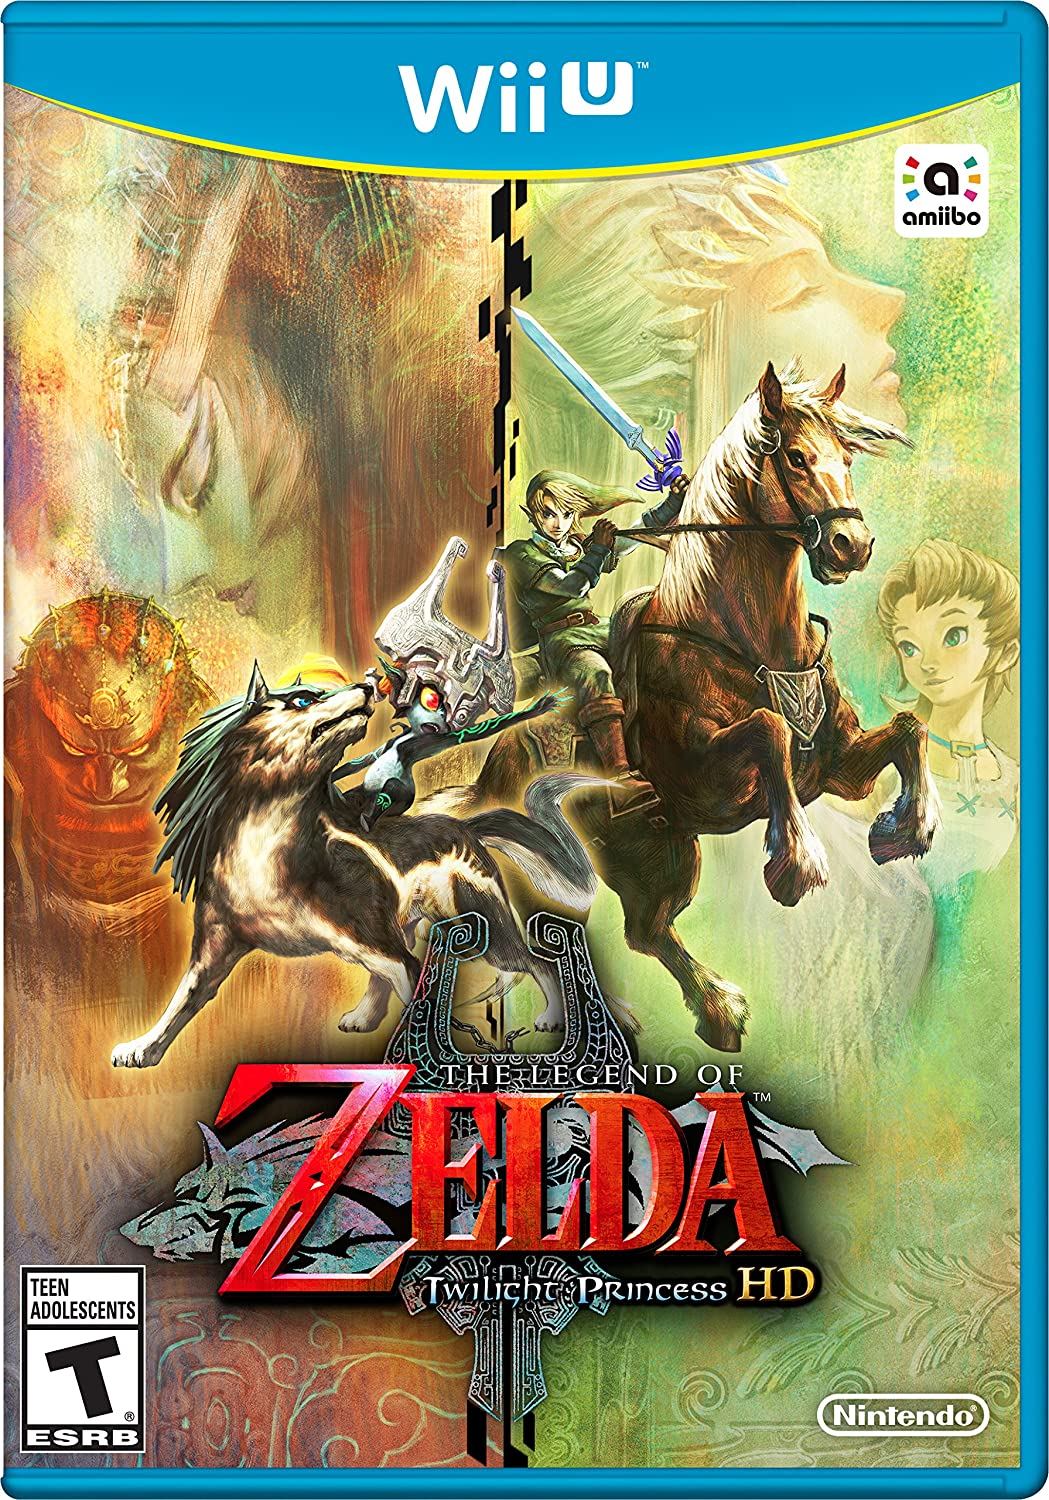 Resultado de imagen para legend of zelda twilight princess hd wii u